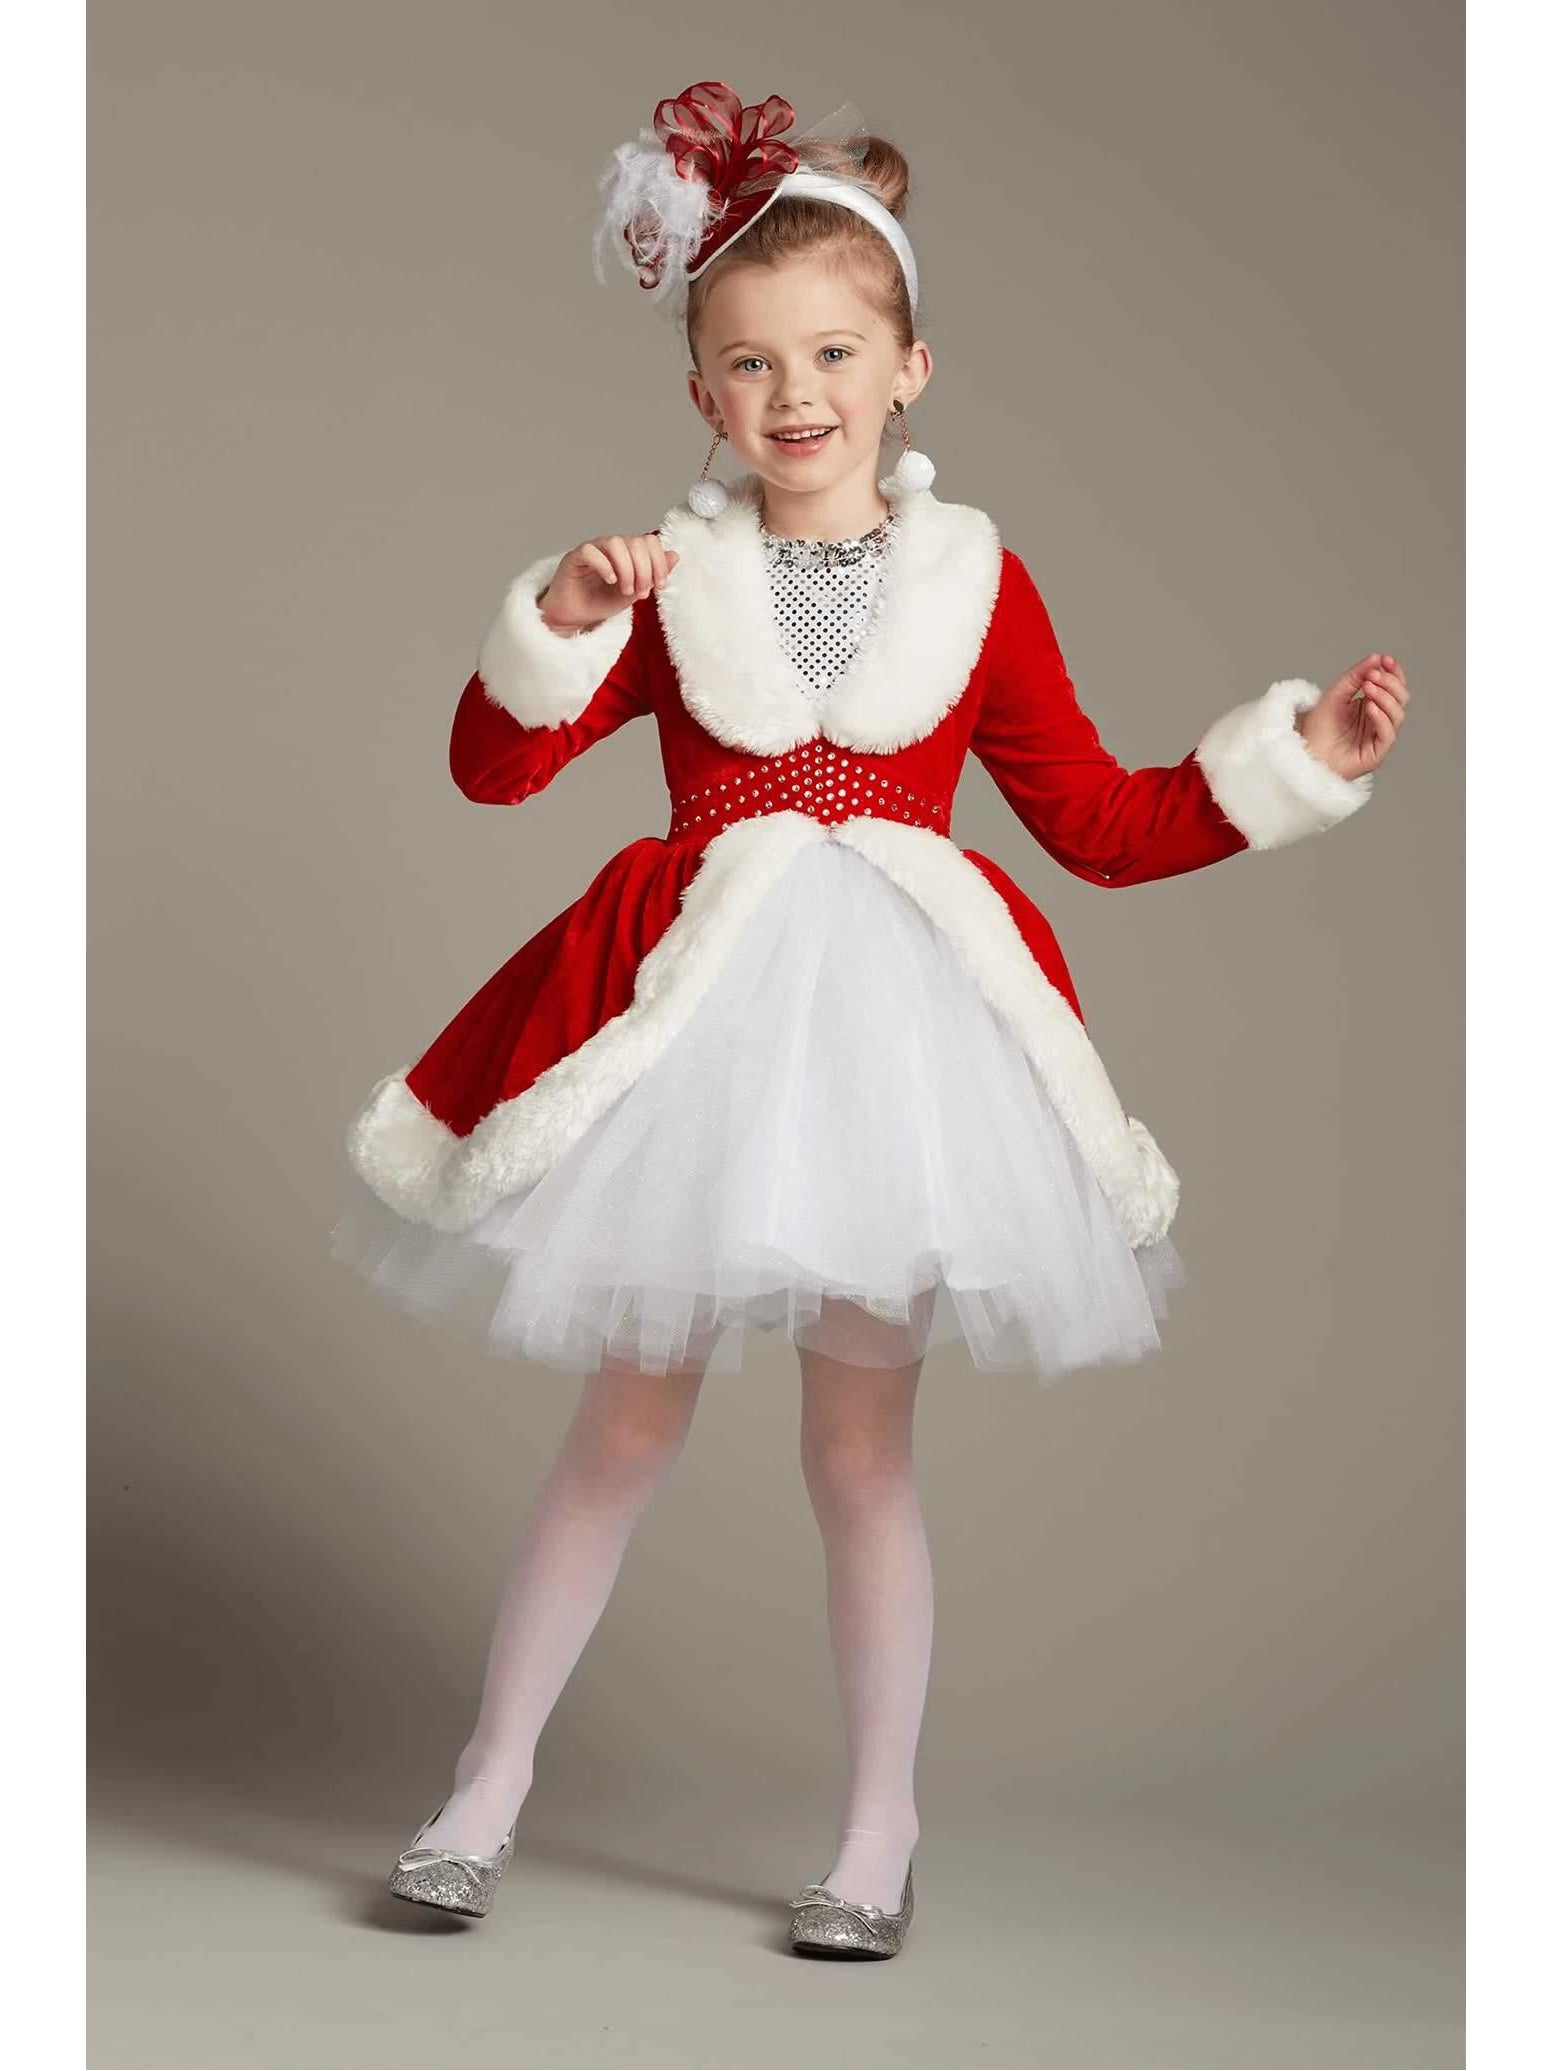 Child Medium Red Christmas Rockette Dance Costume with Arm Mitts!